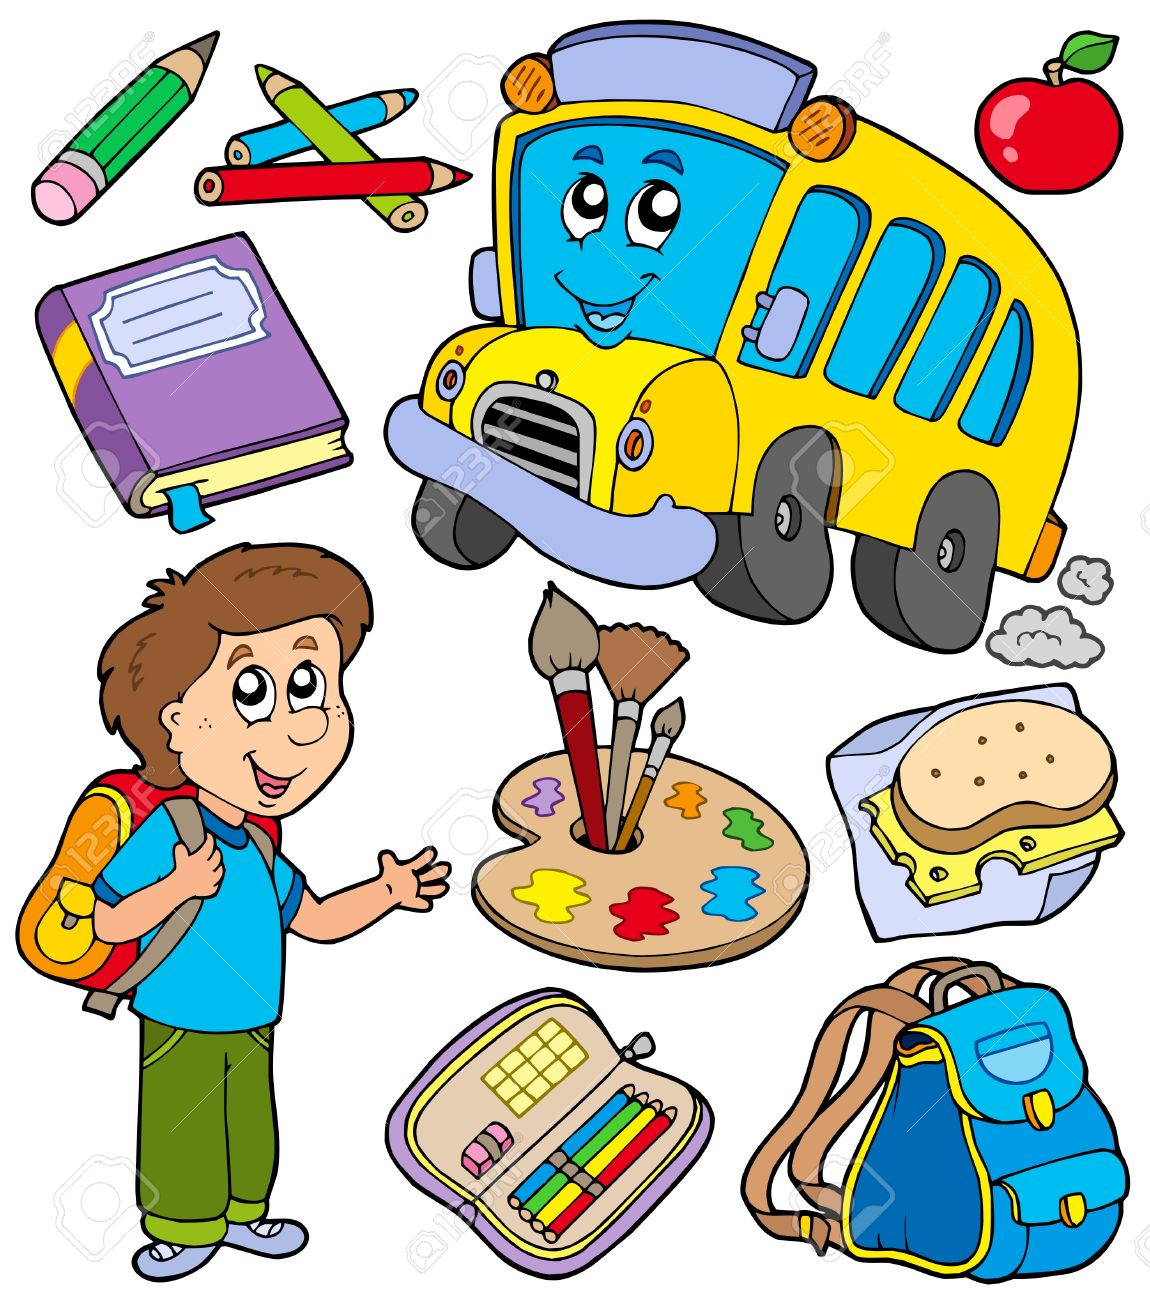 School objects collection - vector illustration. Stock Vector - 6370104